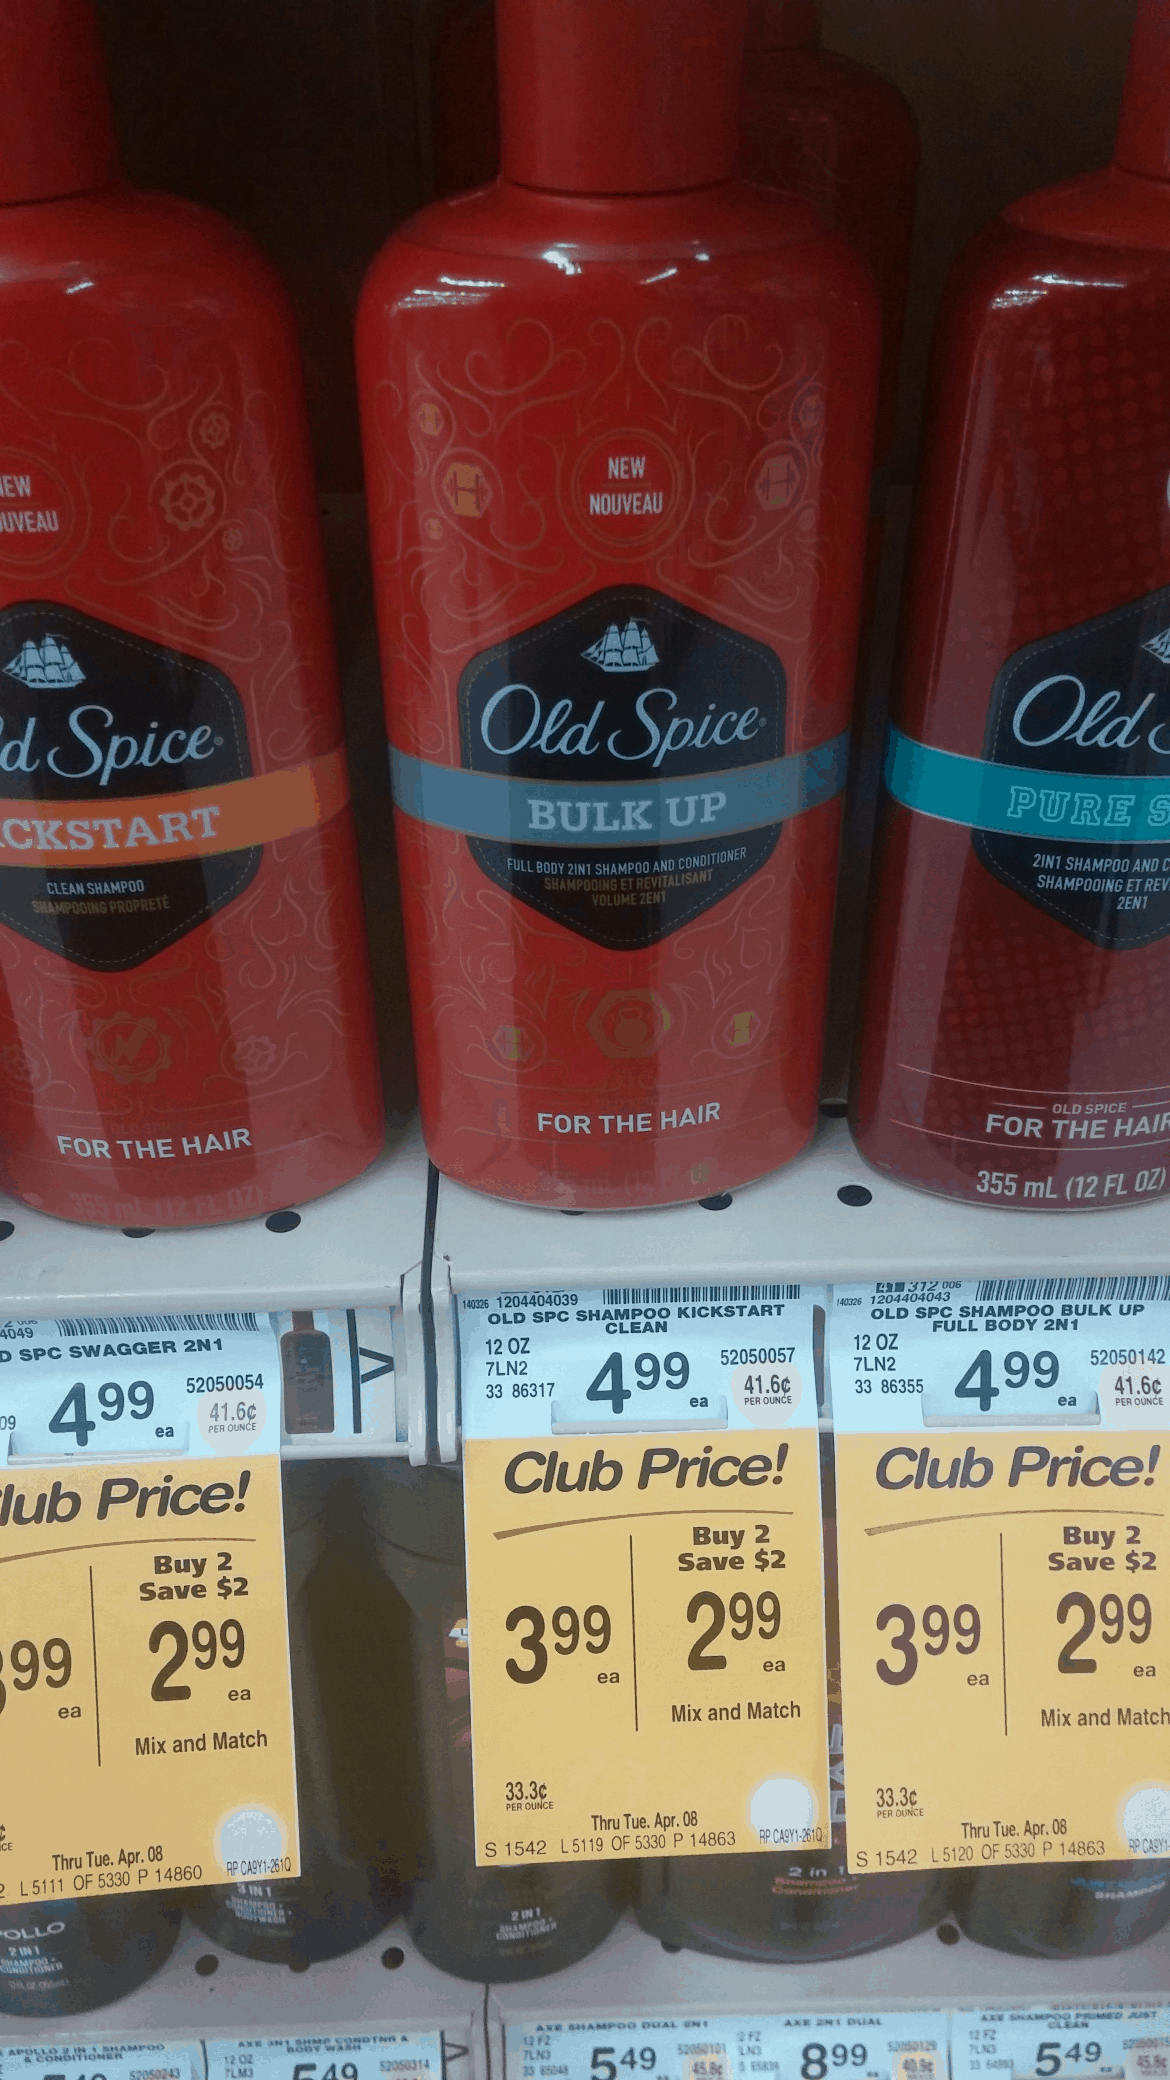 Old Spice Body Wash Only $.49 at Safeway!!!